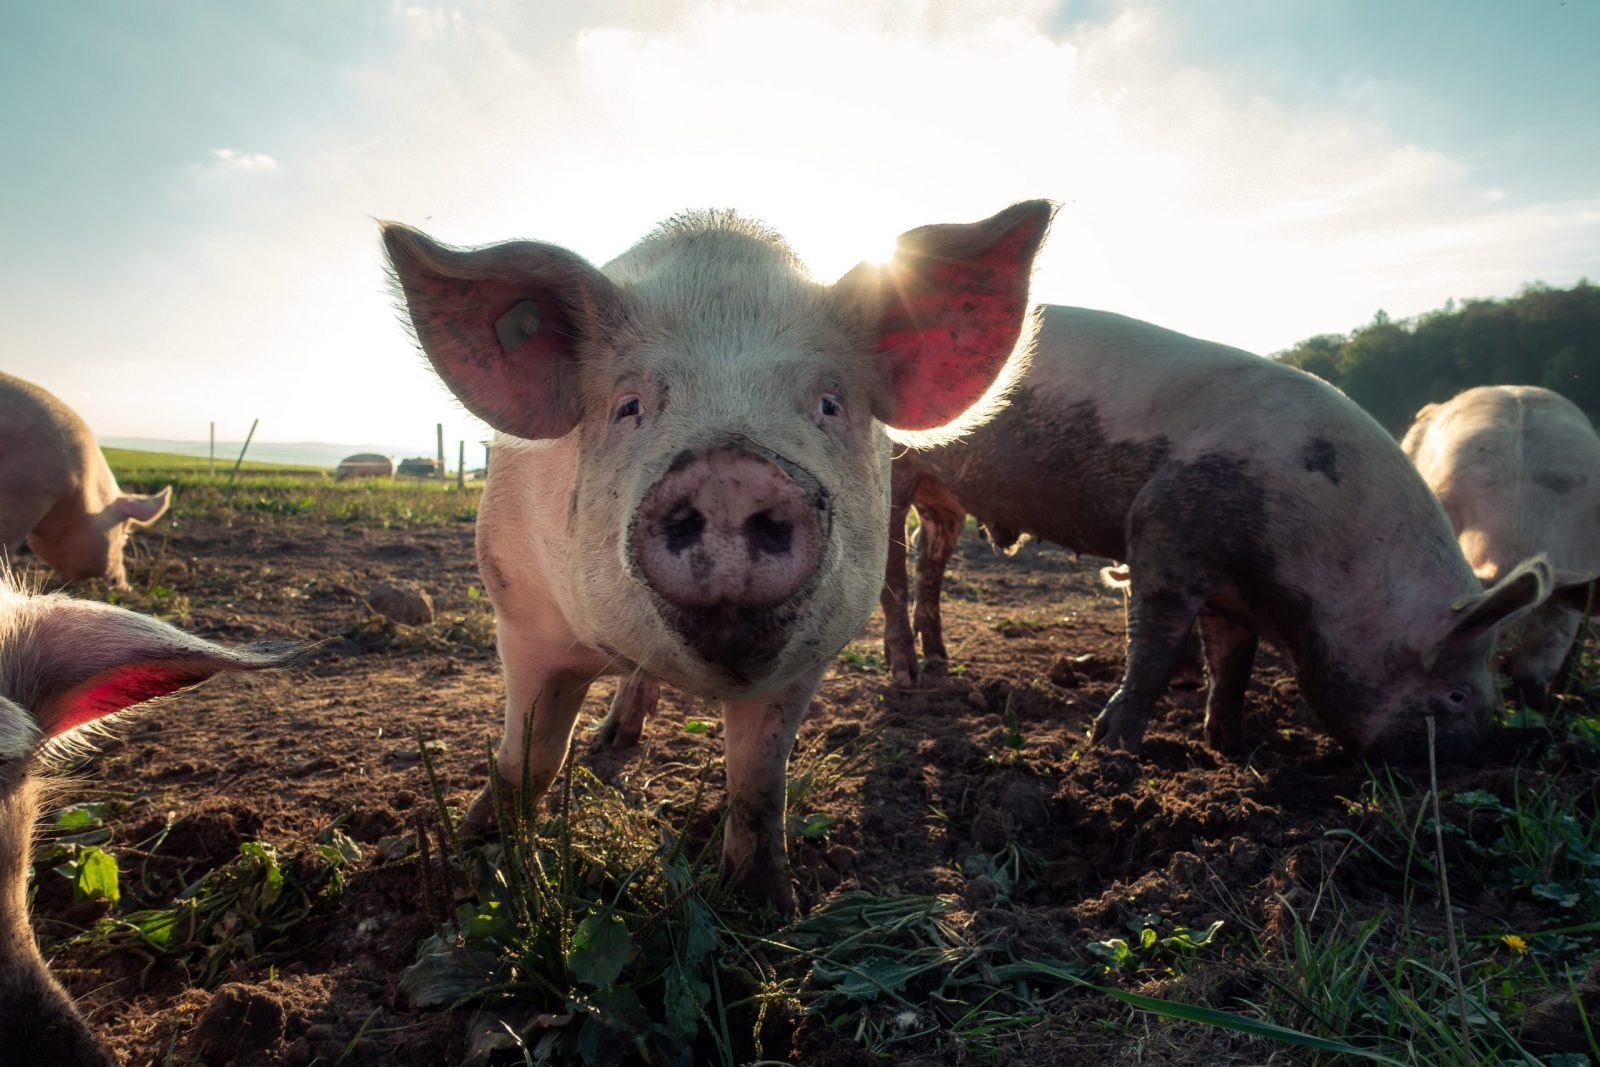 Pigs can cause issues with manure management